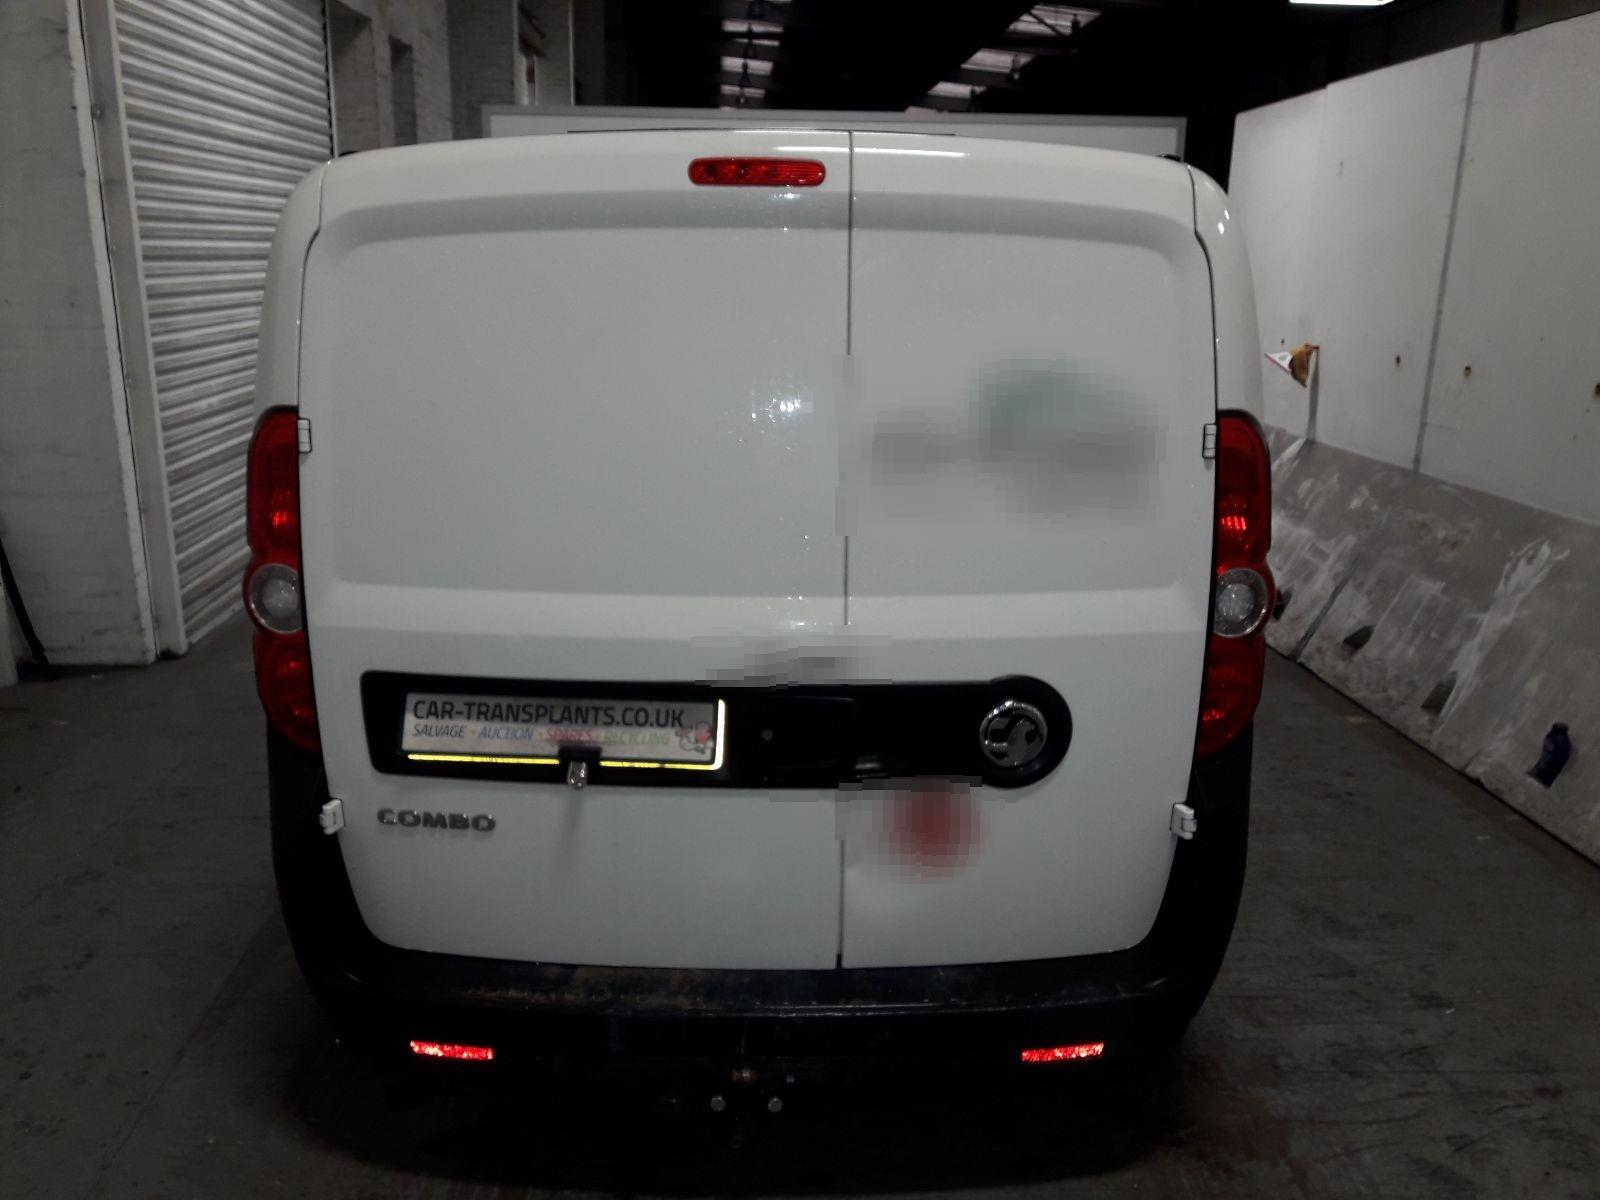 2016 Vauxhall Combo 2012 On 2000 L1h1 Cdti Lcv Diesel Manual Spares Enquiry Form